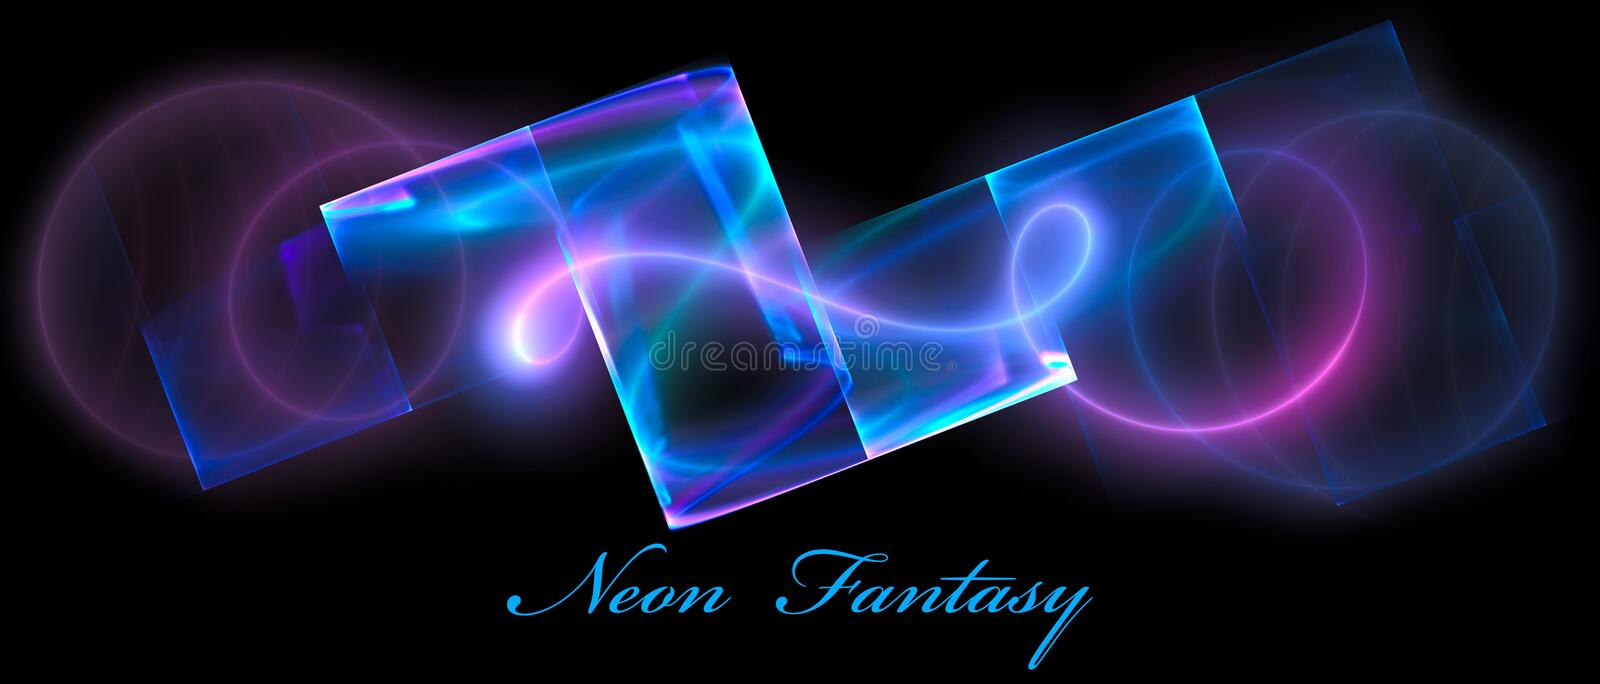 Download Neon Fantasy Stock Images - Image: 36980644